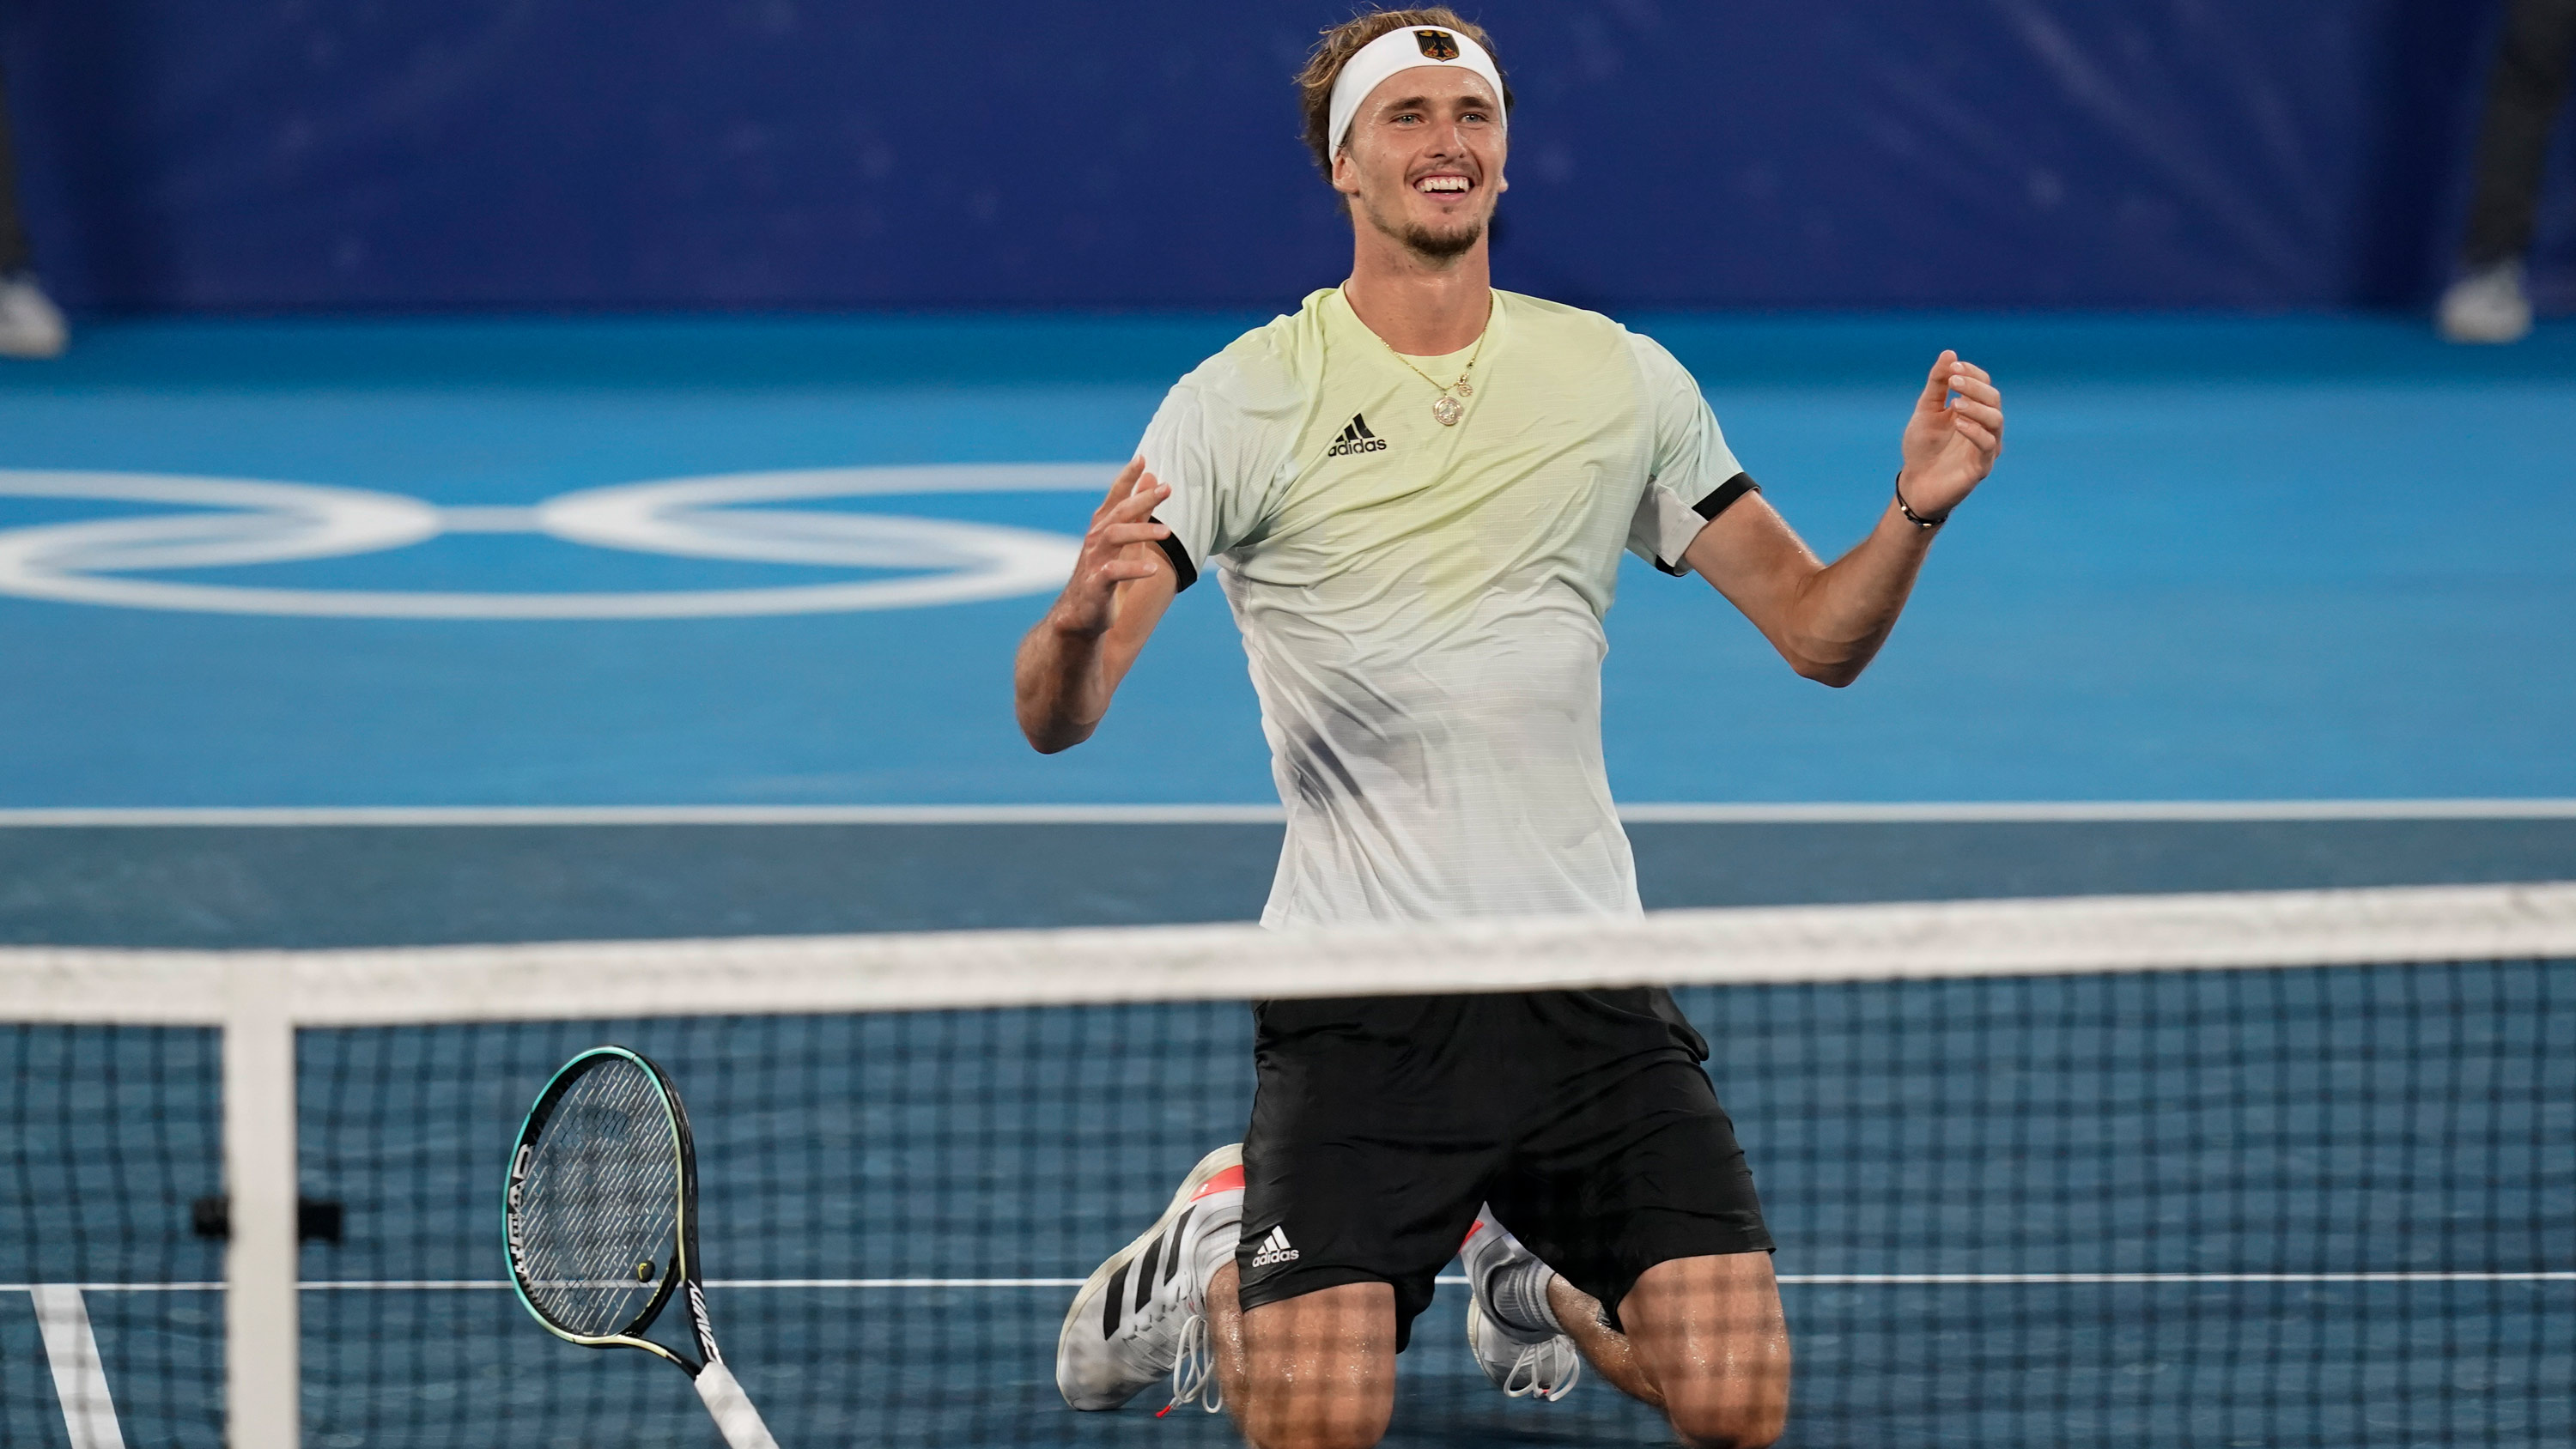 Germany's Alexander Zverev reacts after winning the tennis single's gold against the ROC's Karen Khachanov on August 1.